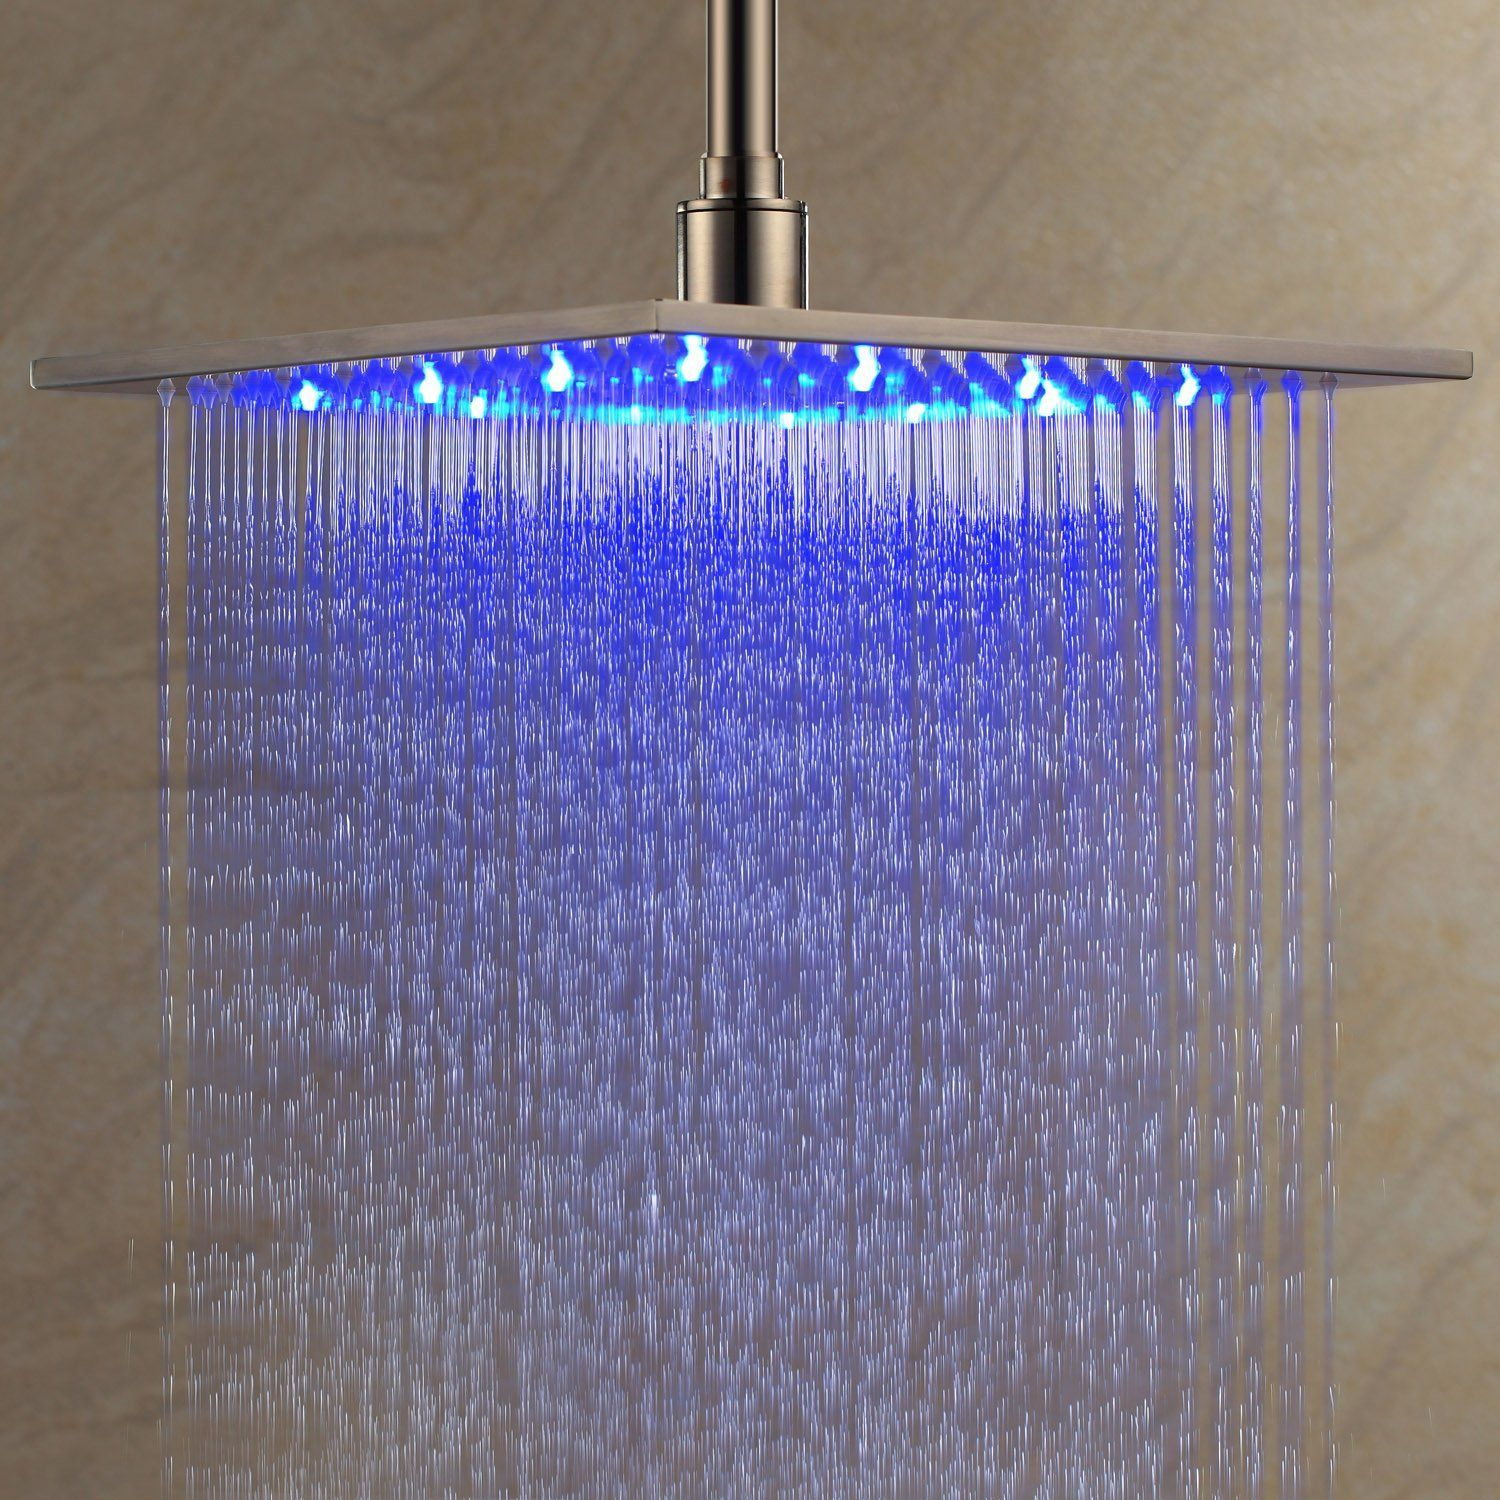 Best Led Shower Head Reviews In 2020 Led Shower Head Shower Heads Led Color Changing Lights